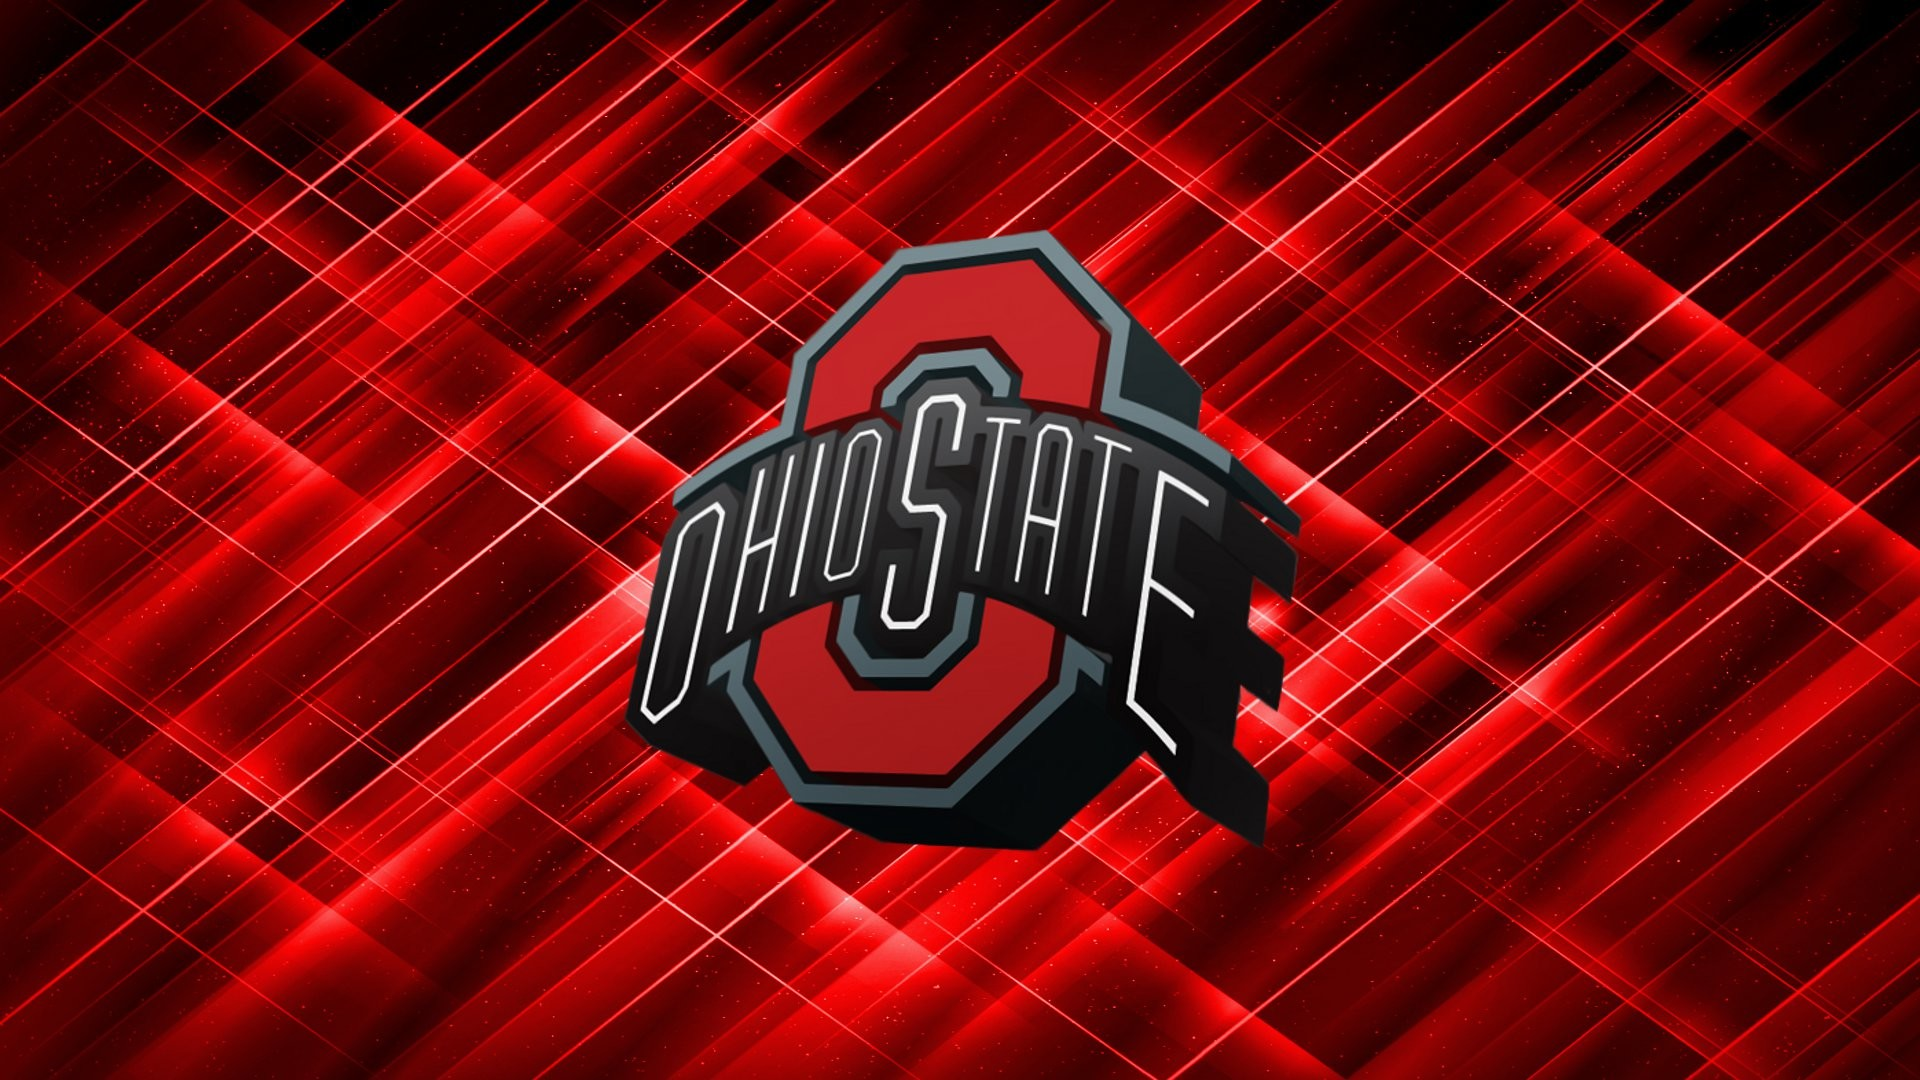 1920x1080 Ohio State Football images OSU Wallpaper 12. HD wallpaper and .